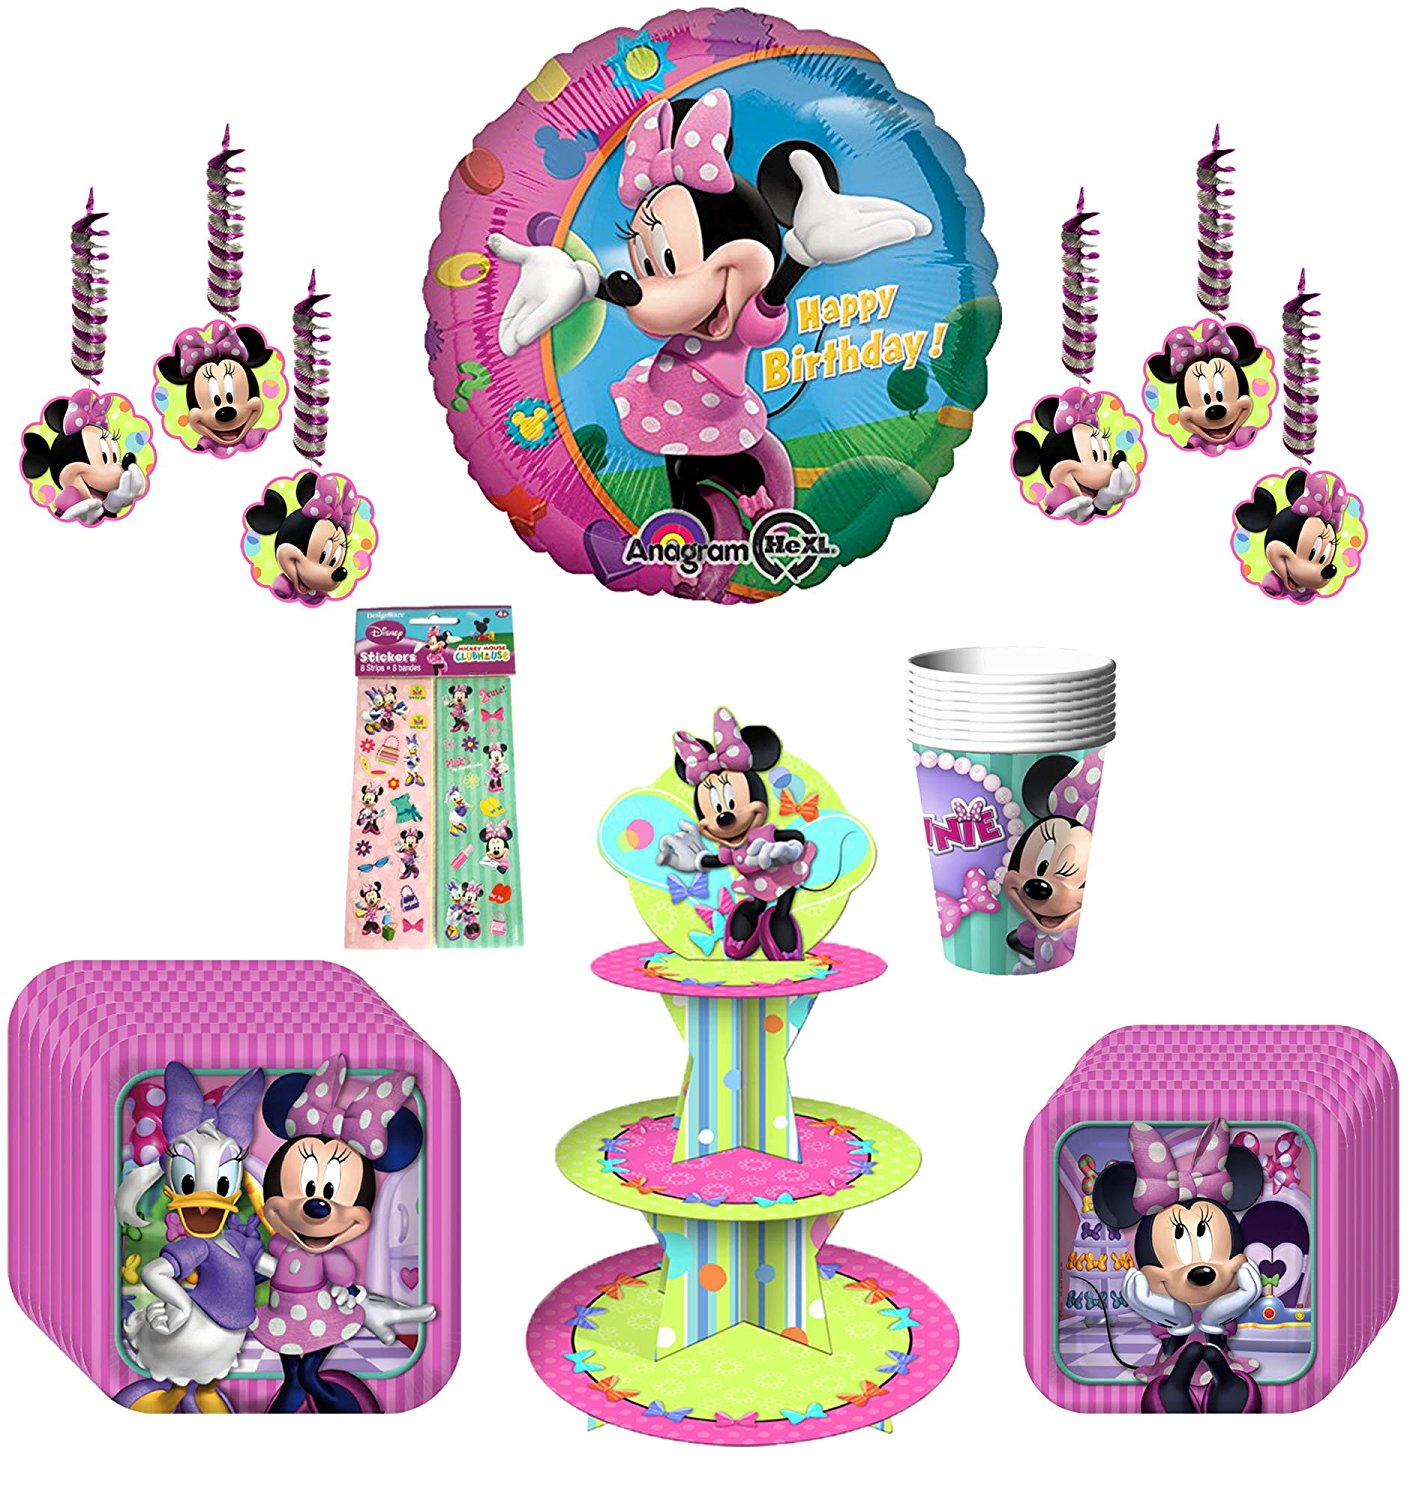 Disney Minnie Mouse Bow-tique Dream Party Pack 40pc